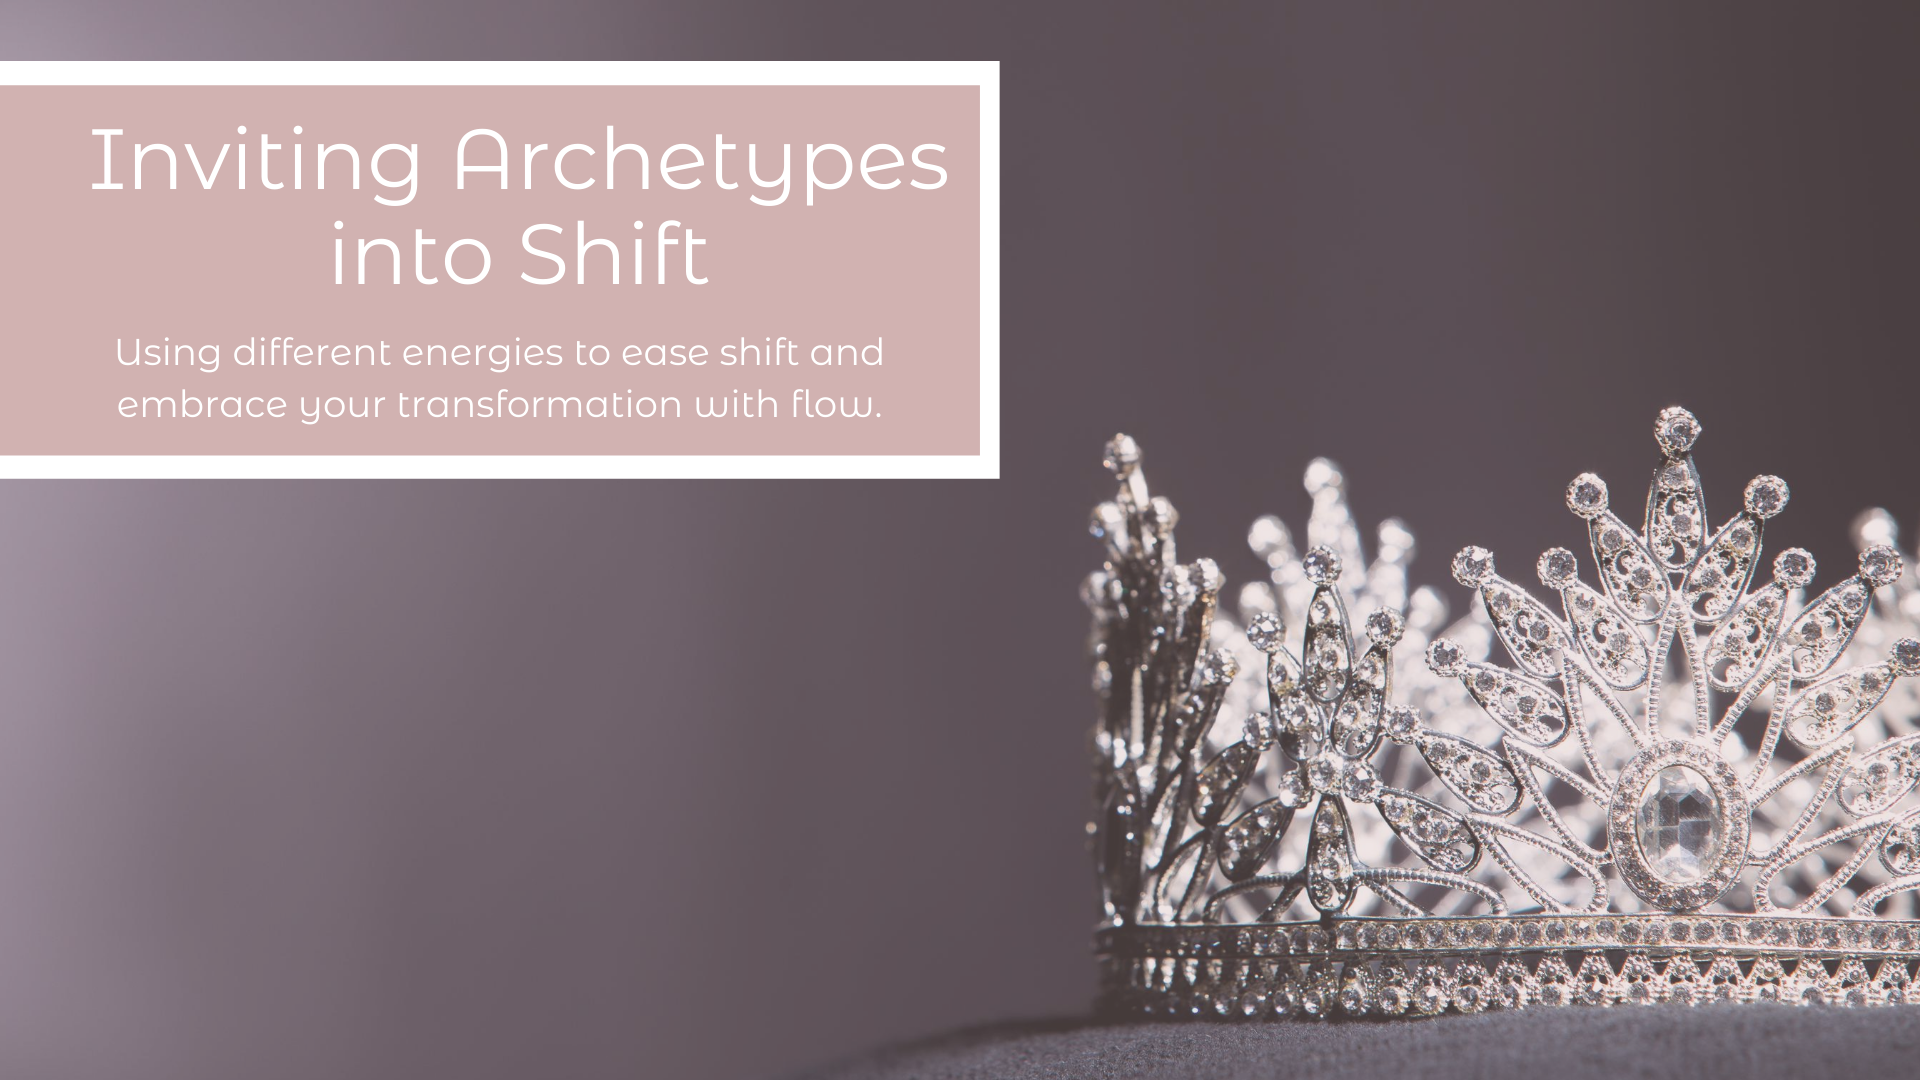 Inviting Archetypes into Shift